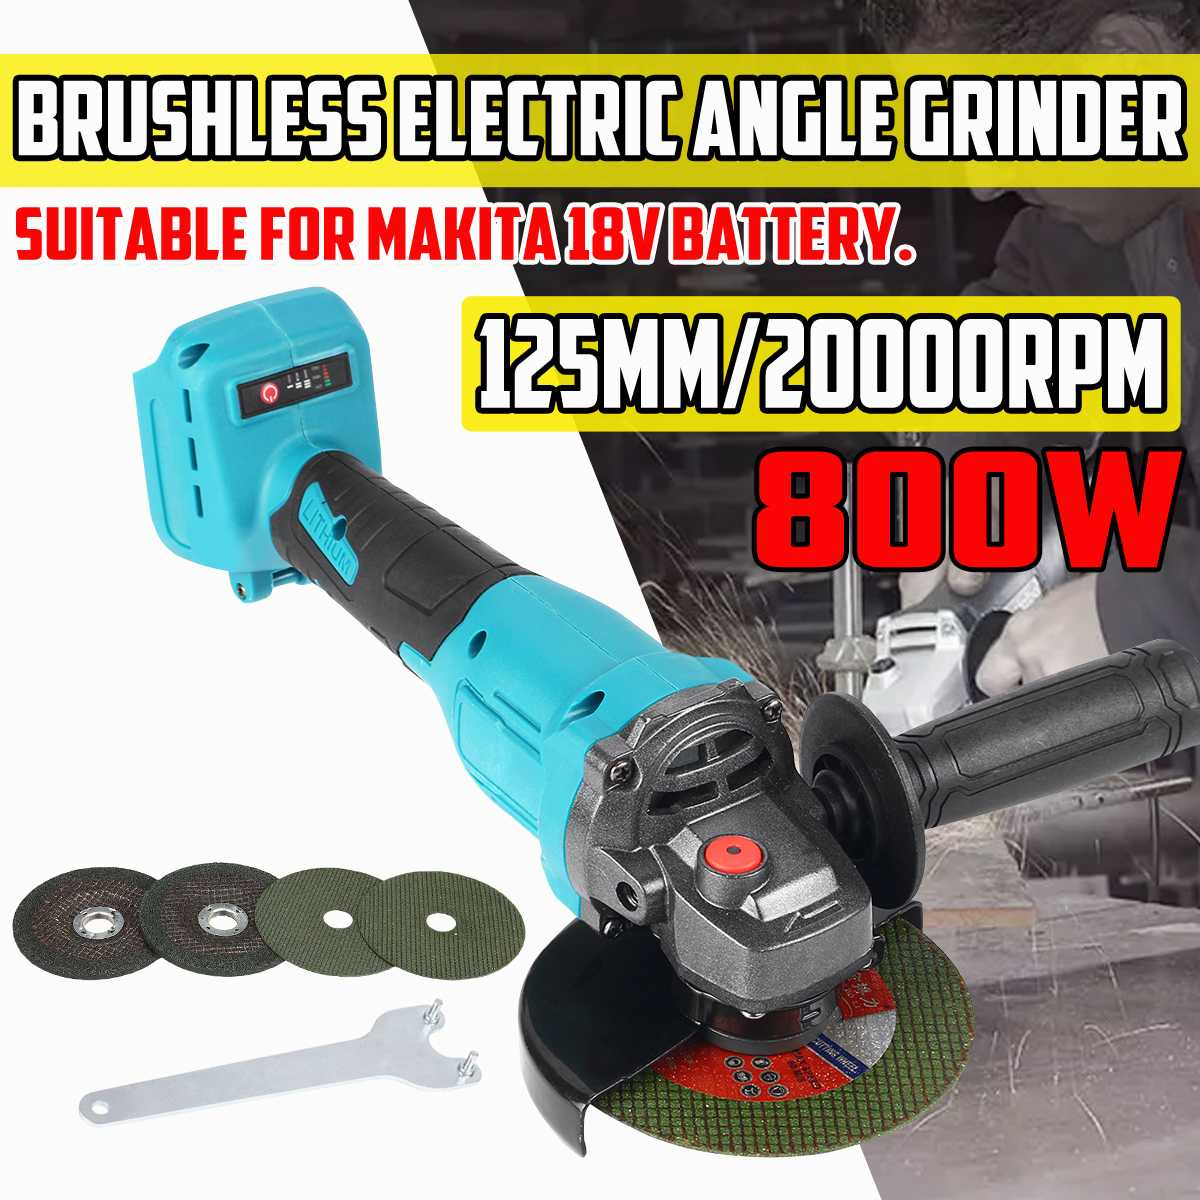 Brushless Angle Grinder 125mm 800W 20000rpm Electric Angle Grinder Machine with 4pcs Angle Grinding Disc for Makita 18V Battery